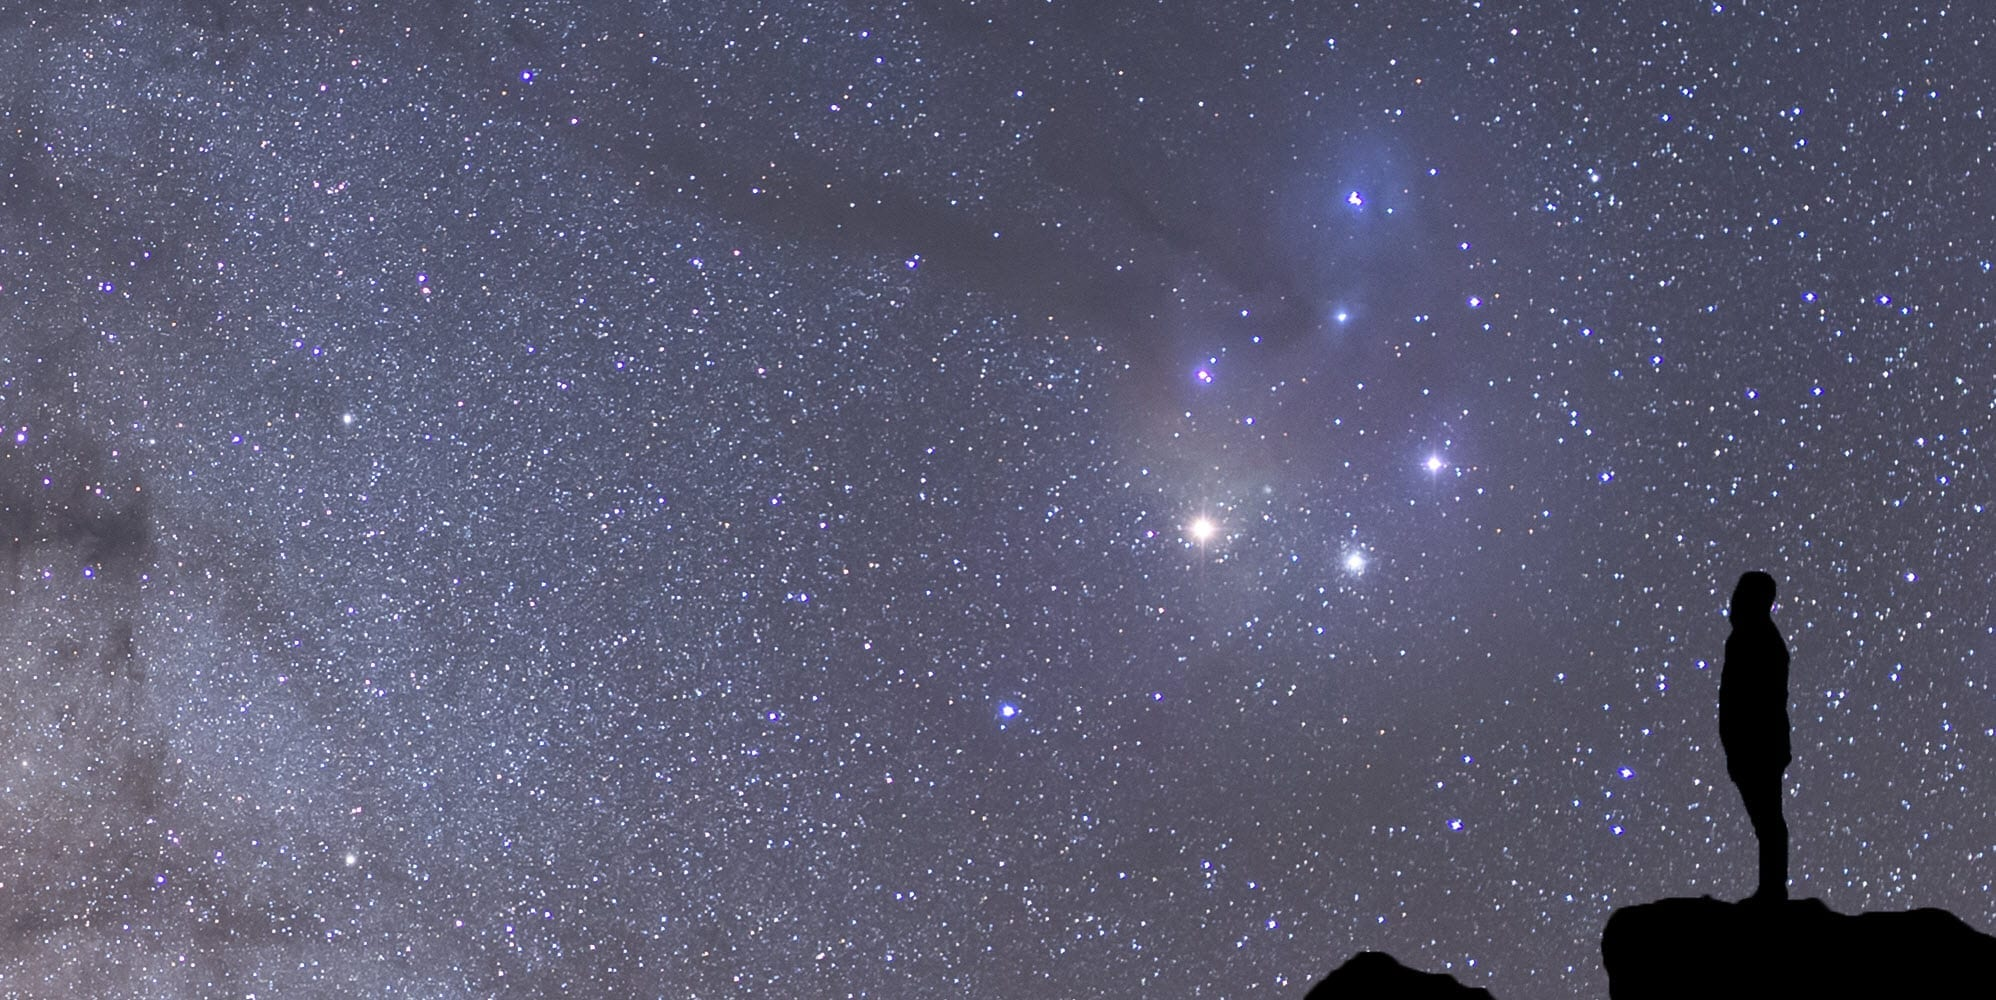 Silhouette of man gazing up at stars